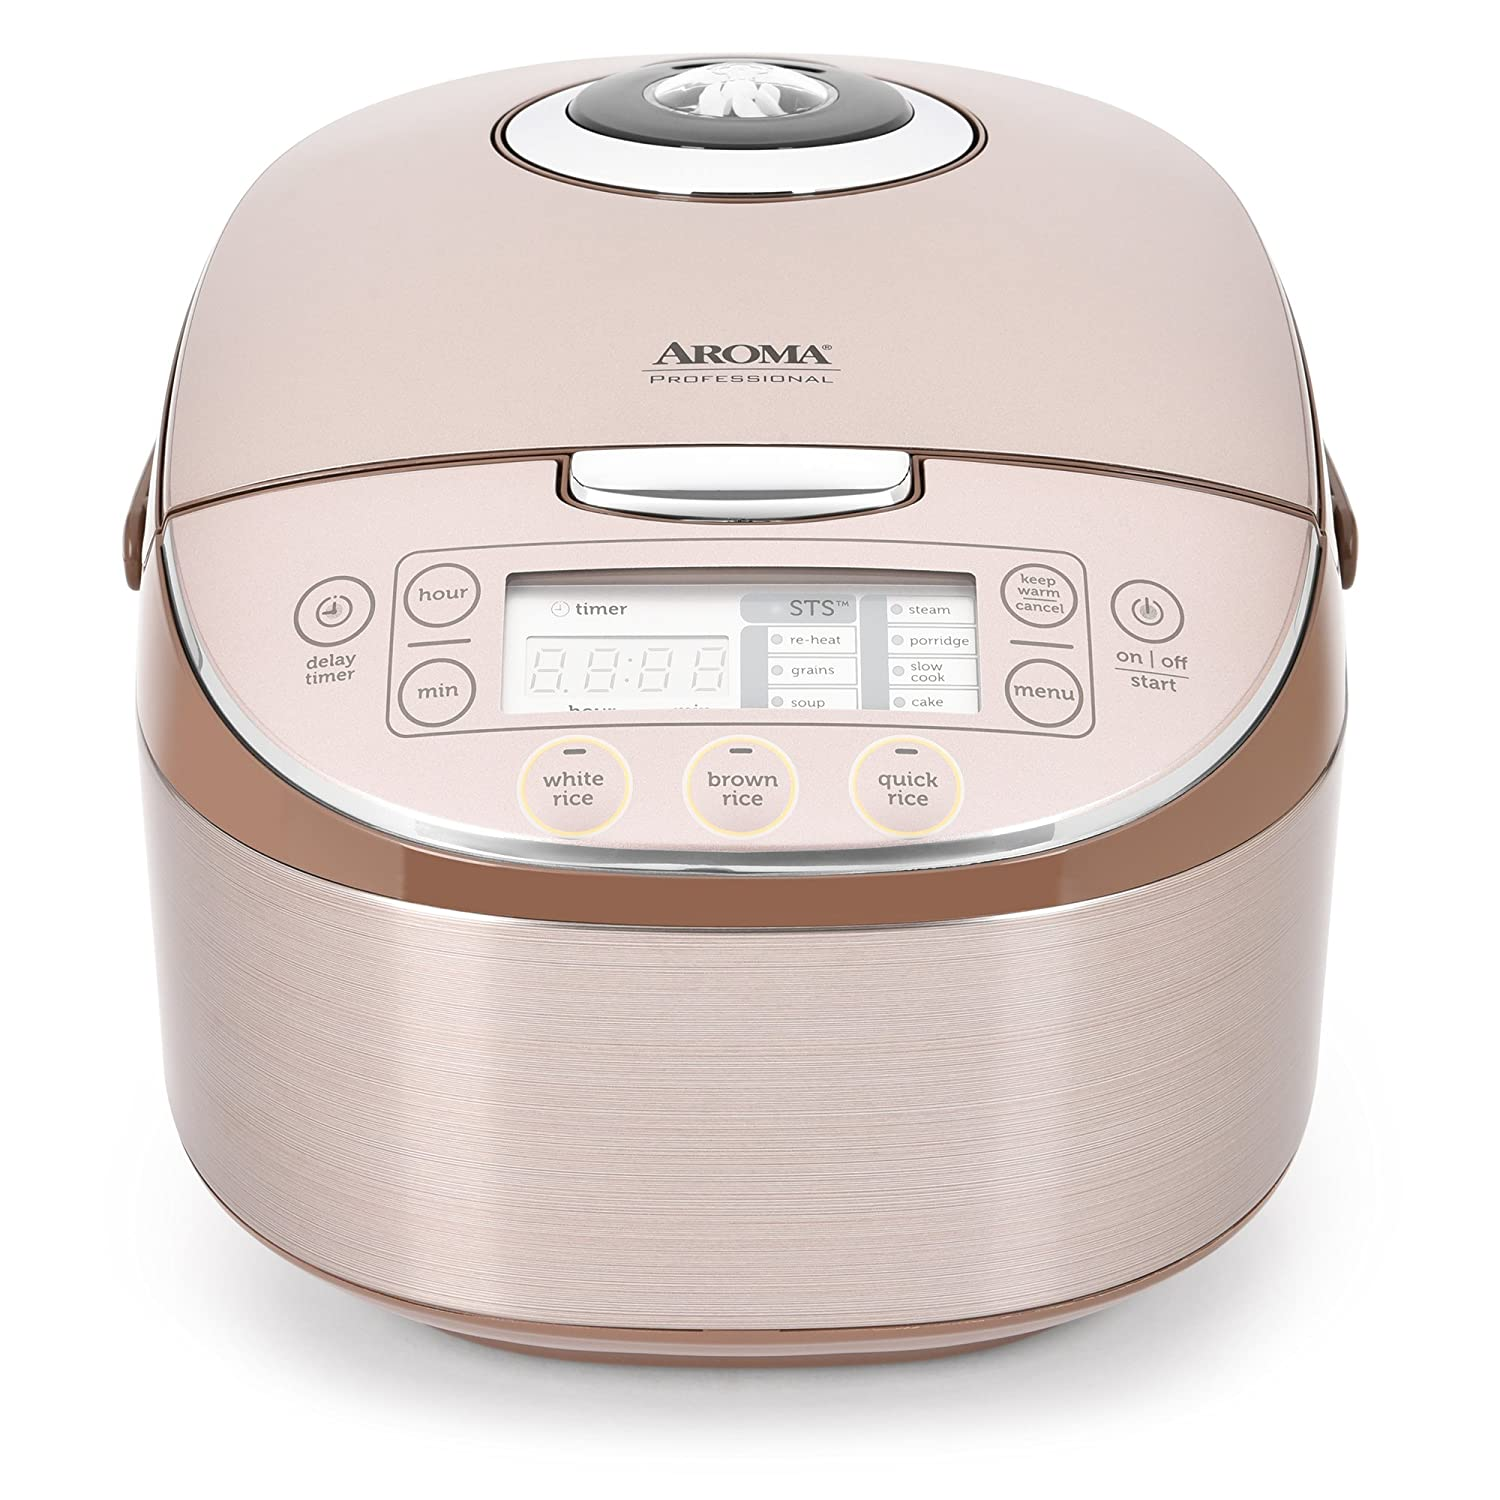 Aroma Housewares MTC-8008 Aroma Professional Rice Cooker/Multicooker Turbo 16 Cup Champagne